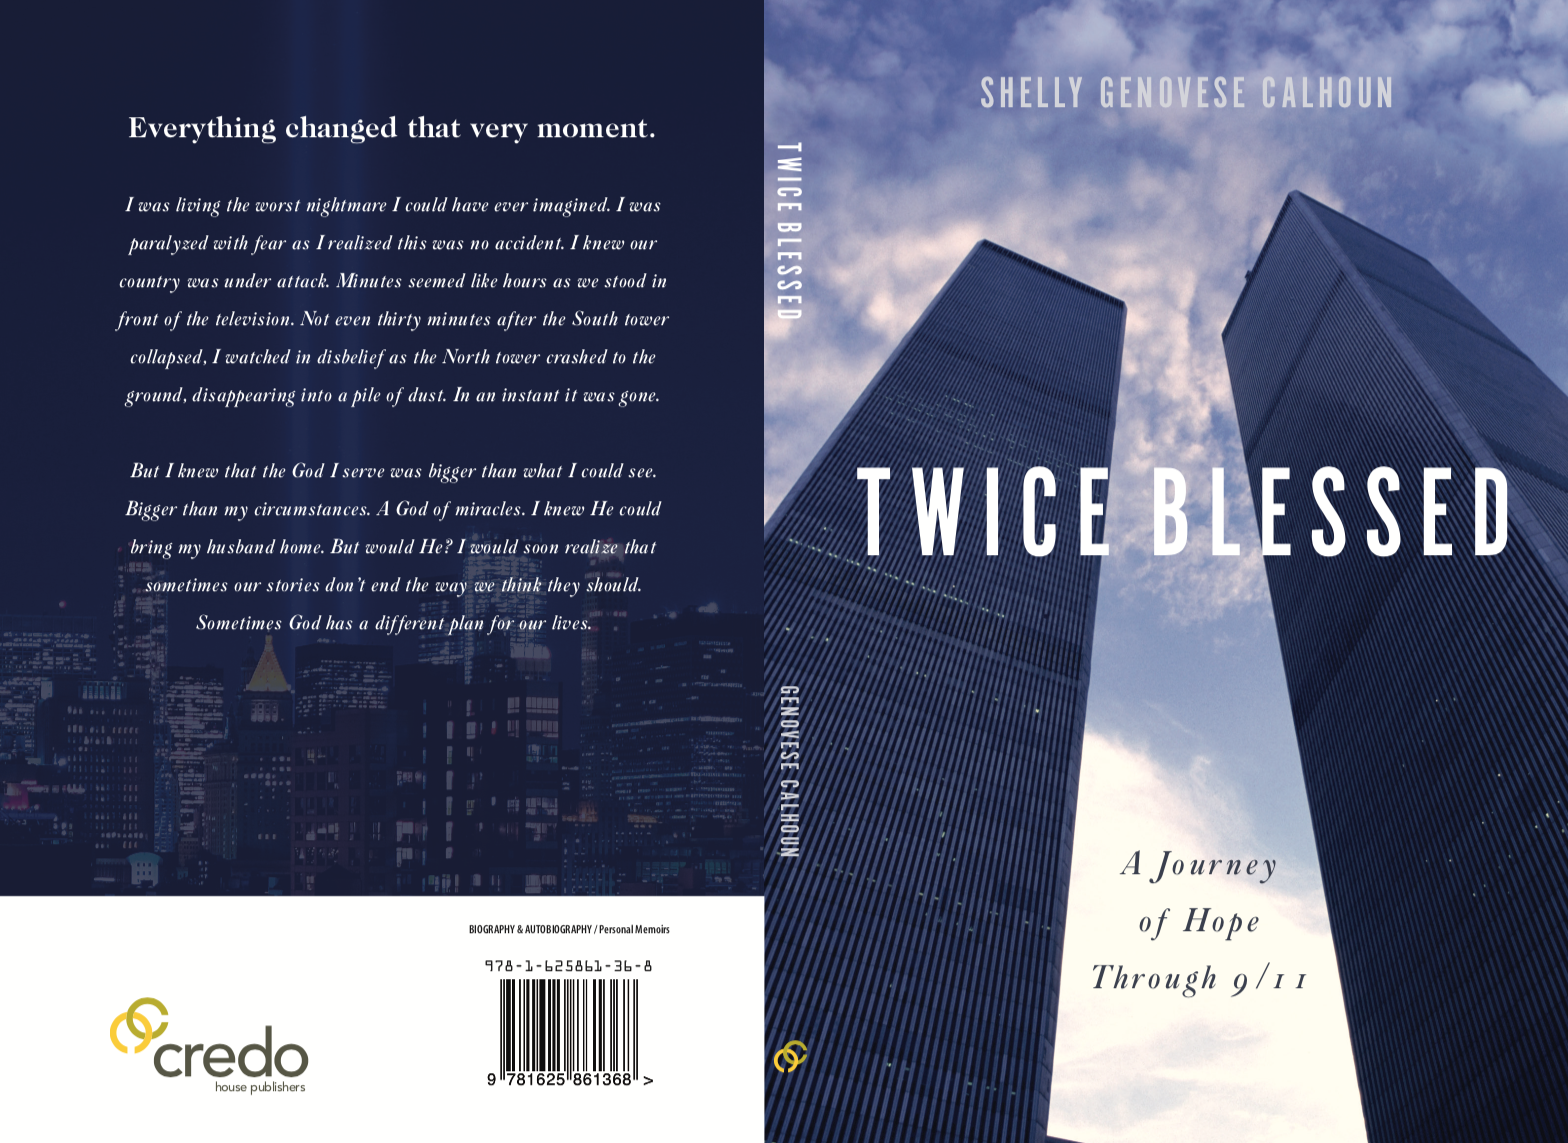 """book cover: It warms her heart that Steve's and other people's memories are still being kept alive. She said, """"Anyone who has read my book and found hope, that is so encouraging to me. What people meant for evil, God will bring good out of."""""""